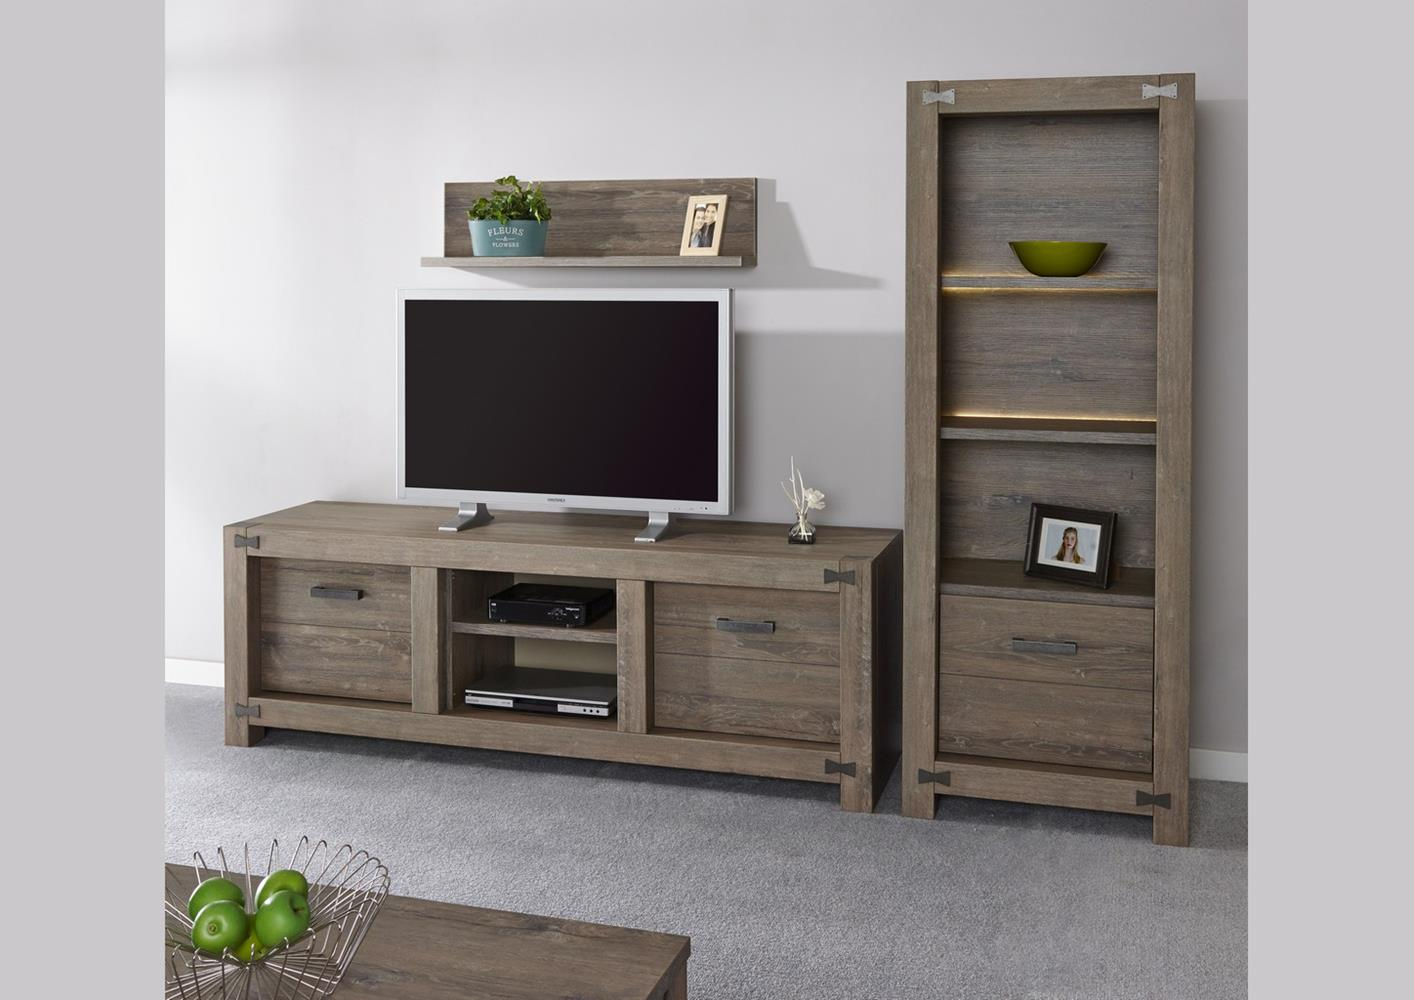 acheter votre meuble tv style exotique 2 portes 1 niche. Black Bedroom Furniture Sets. Home Design Ideas